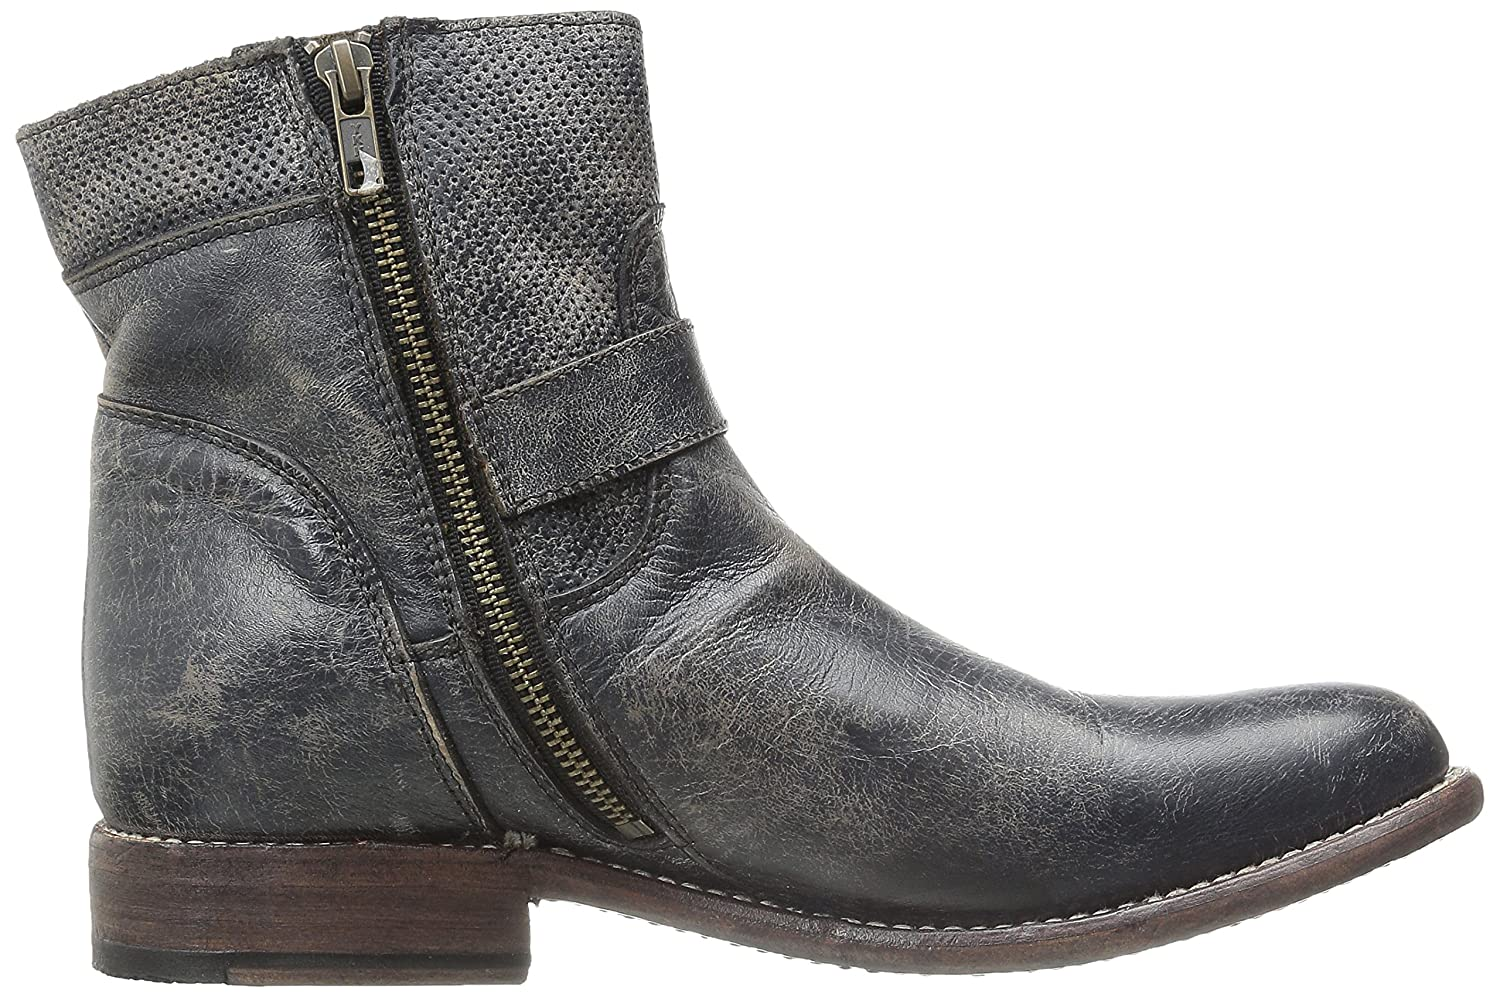 Bed|Stu Women's Becca Boot B0128FVFEE 9.5 B(M) US|Black Lux